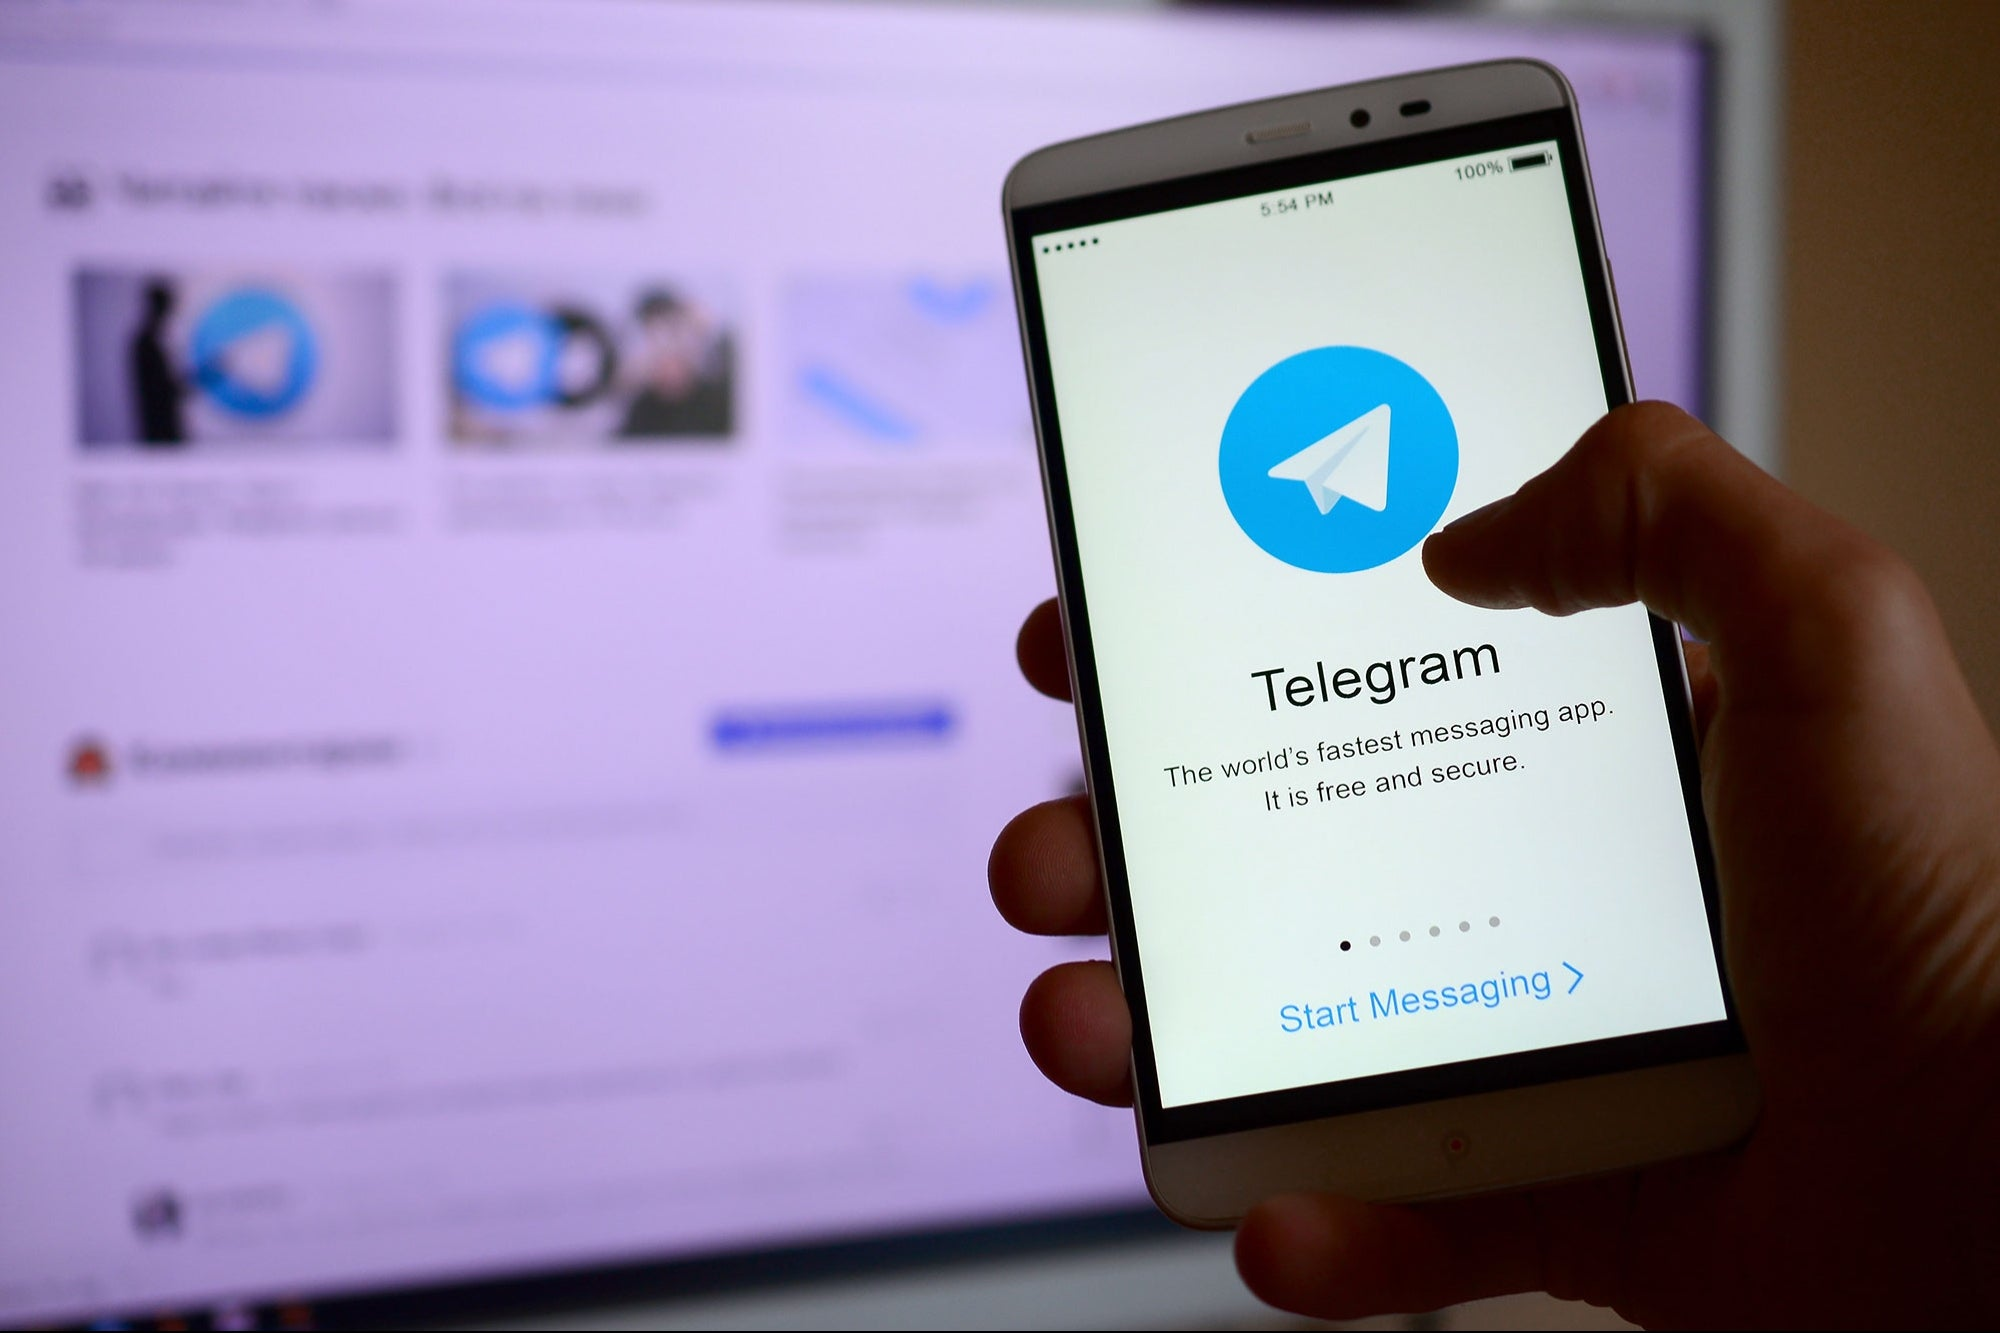 Telegram manages to raise more than a billion dollars in bonds to finance its growth